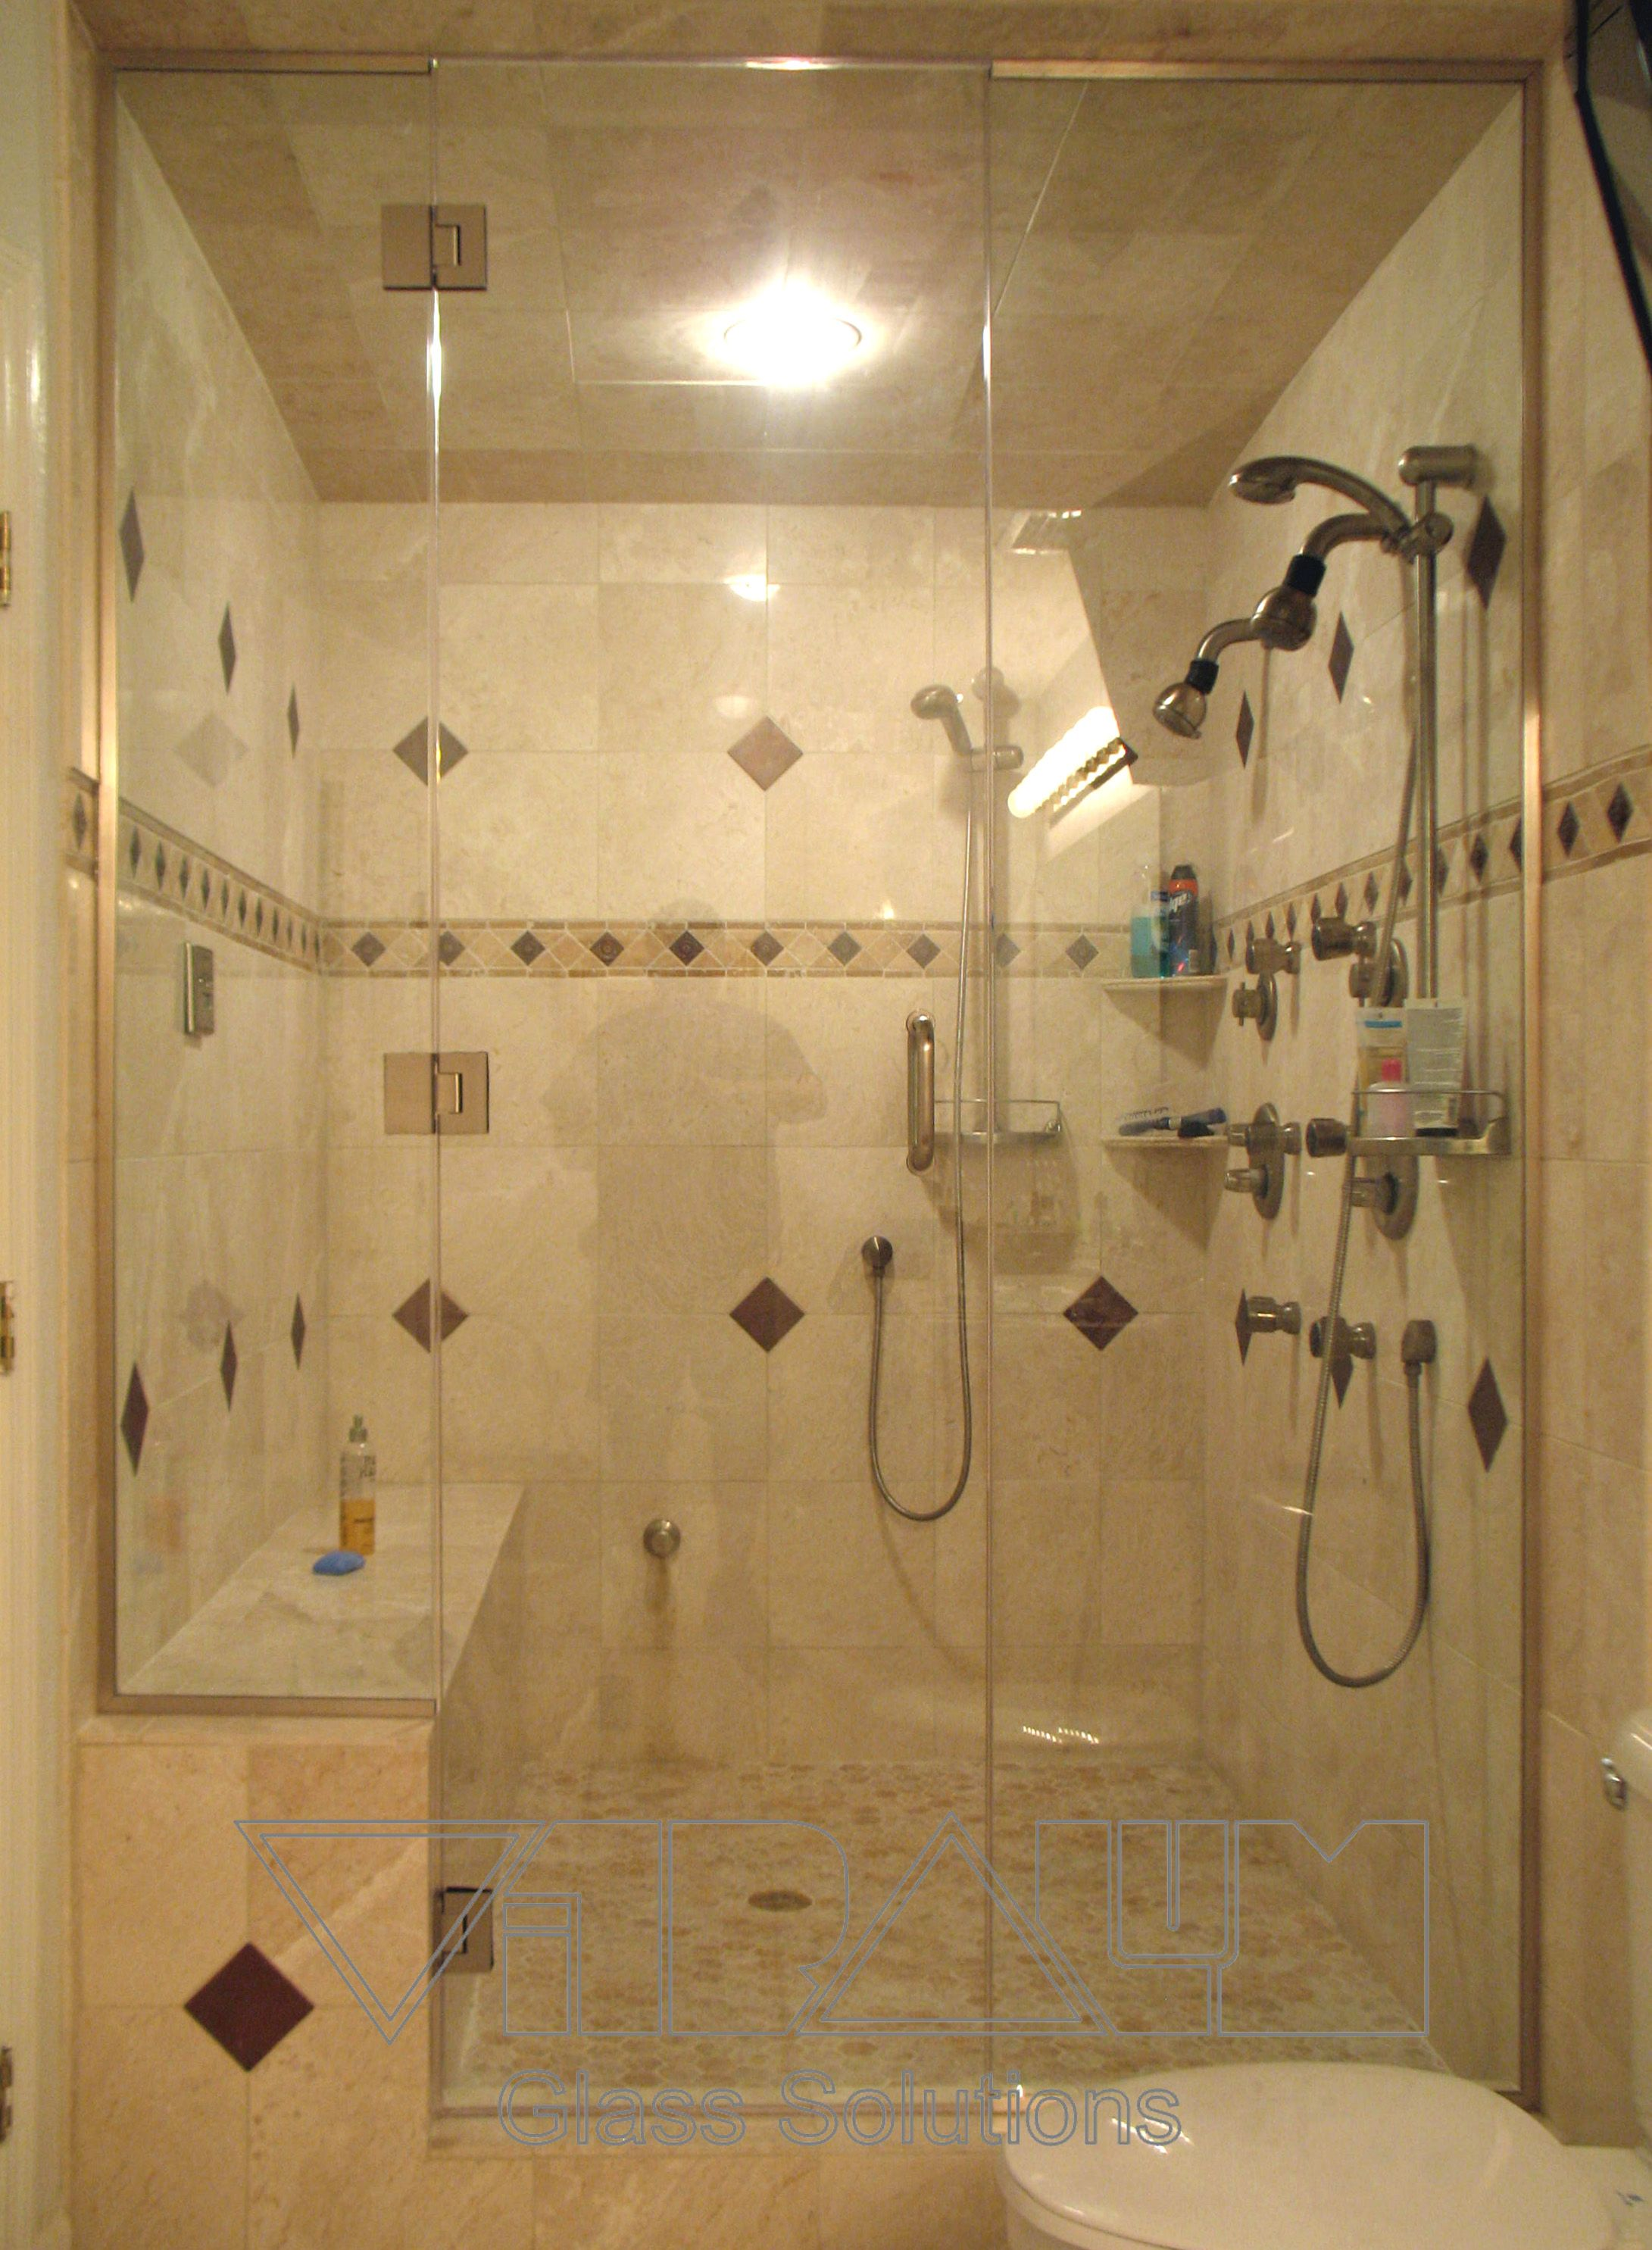 Exquisite Frameless Shower Sliding Doors Shower Room with